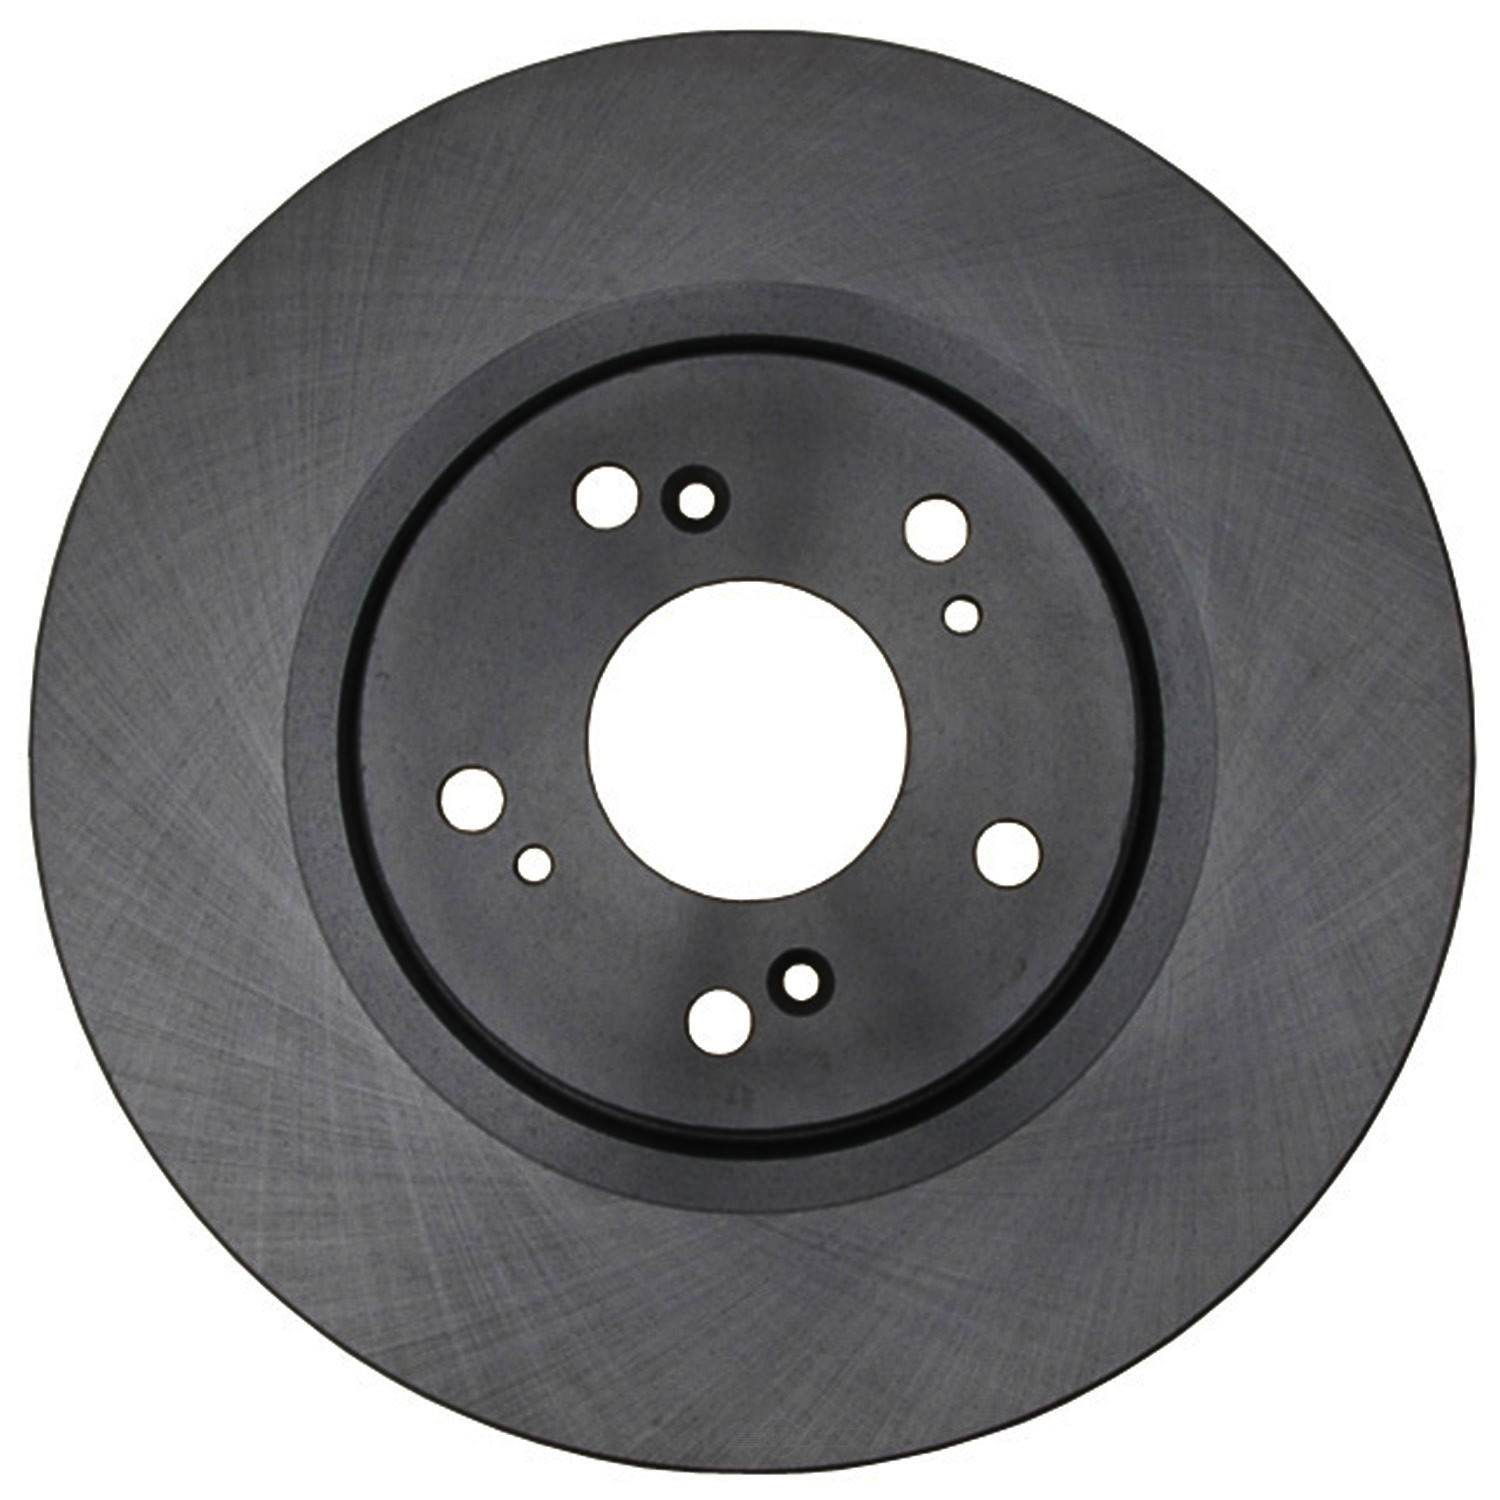 ACDELCO ADVANTAGE - Disc Brake Rotor - DCD 18A2649A